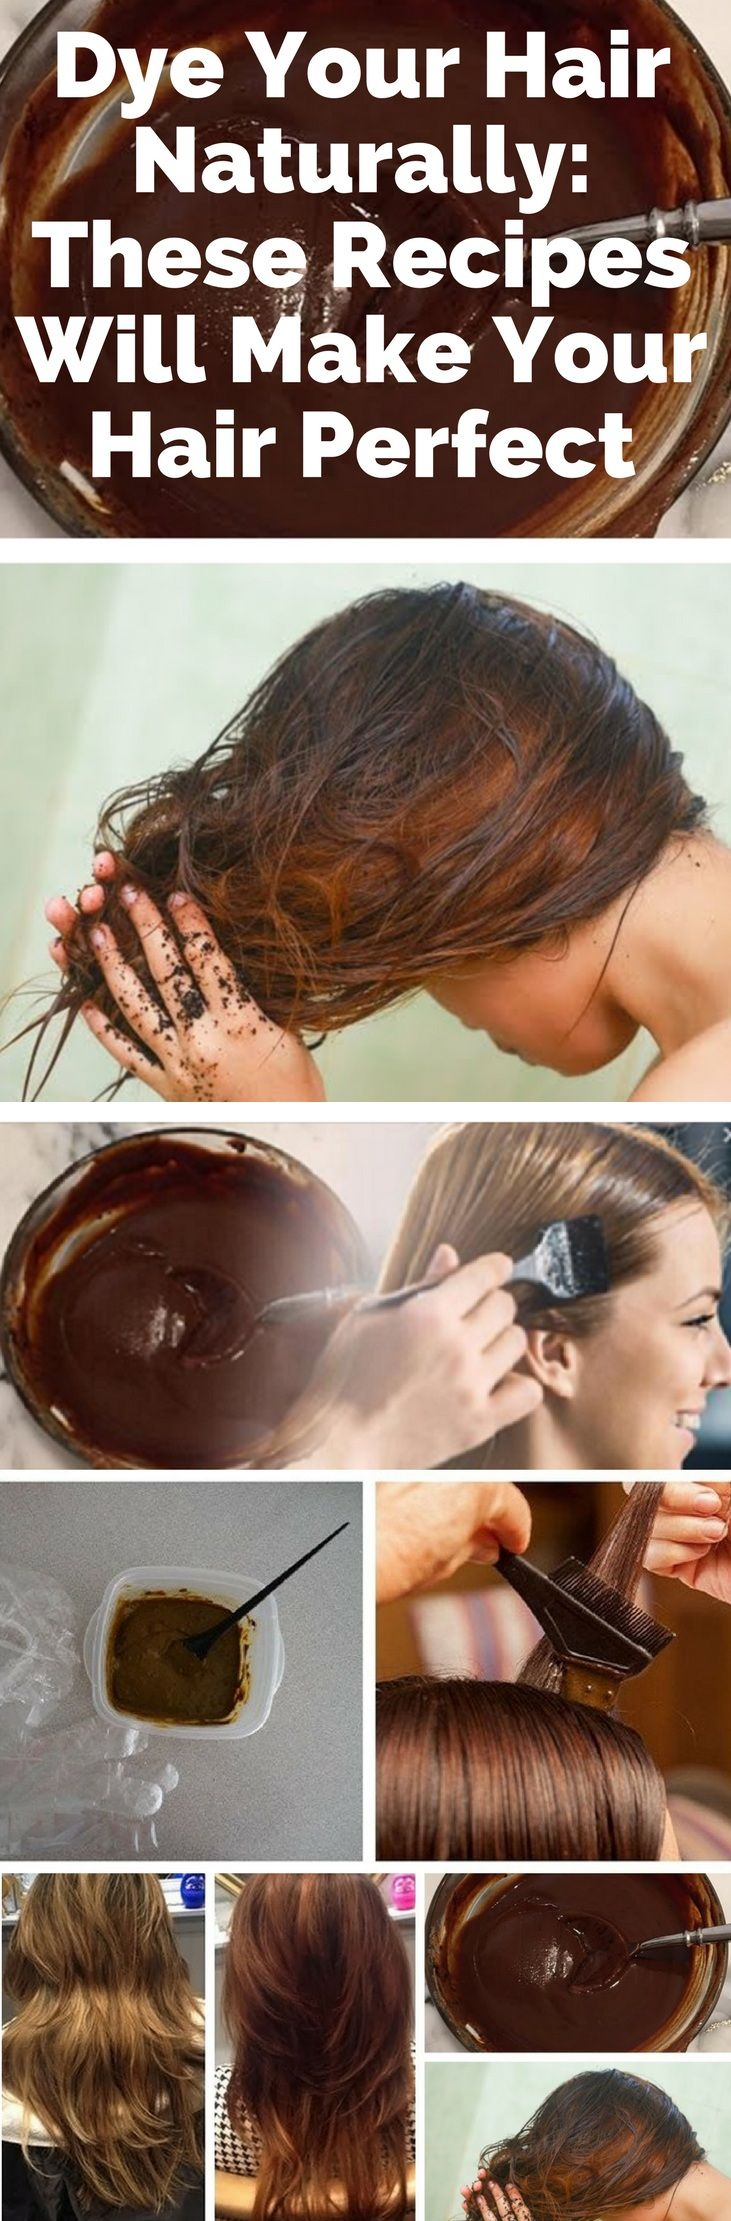 Dye Your Hair Naturally: These Recipes Will Make Your Hair Perfect #hair #natural #recipes #care #home #remedies #diy